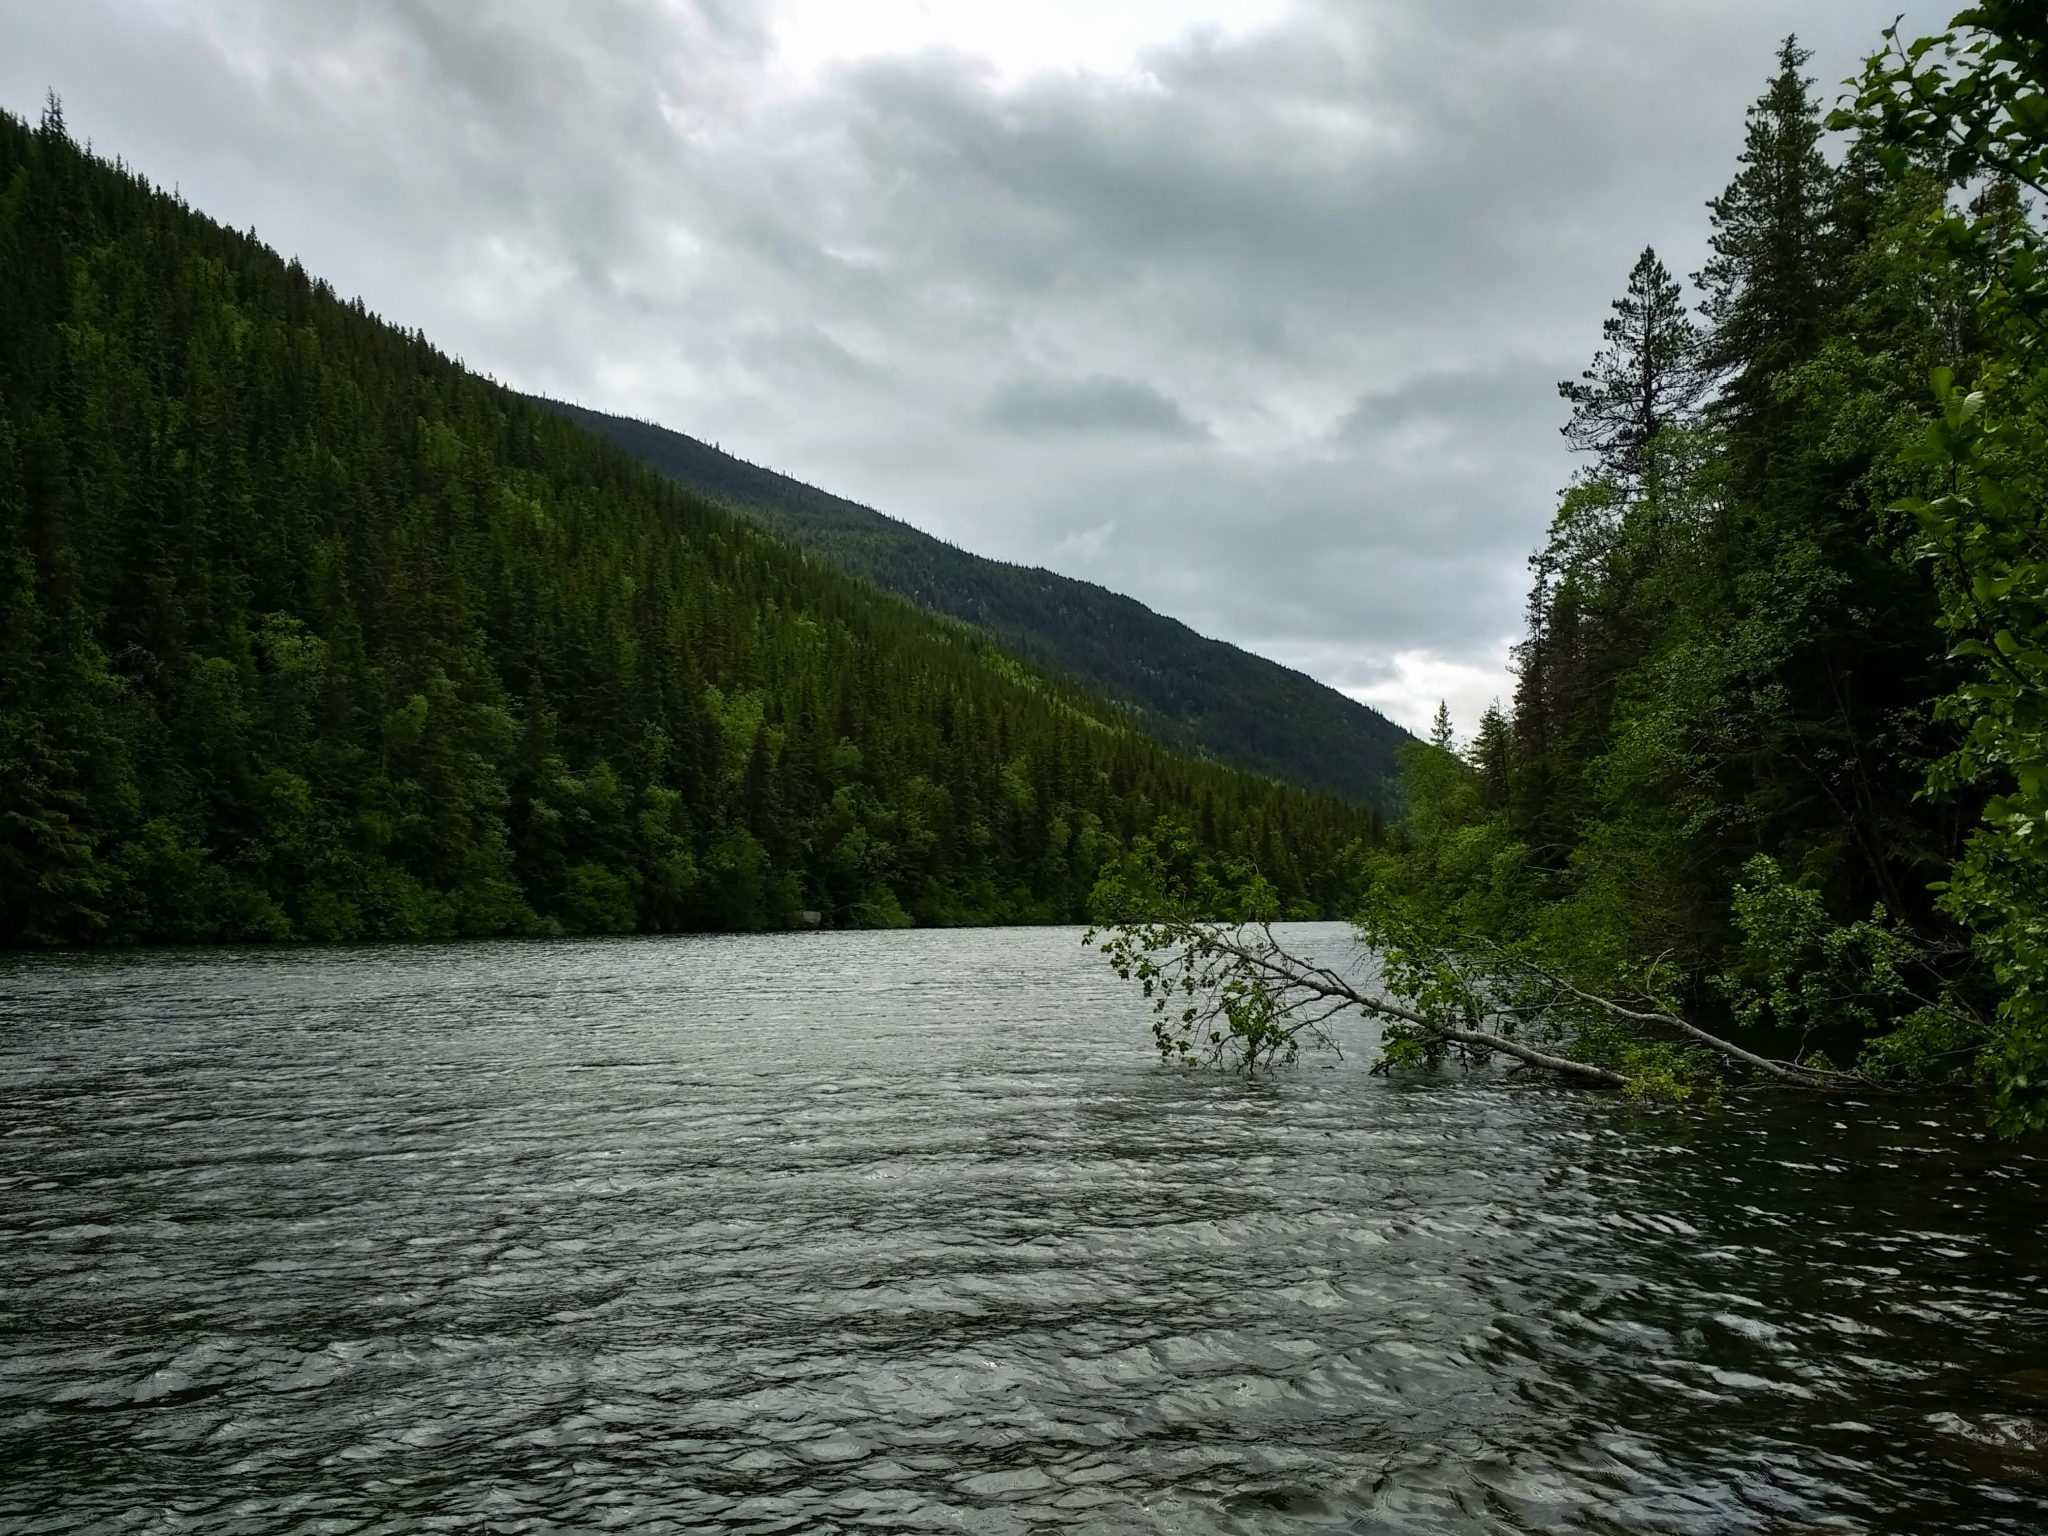 A lake surrounded by forested hills